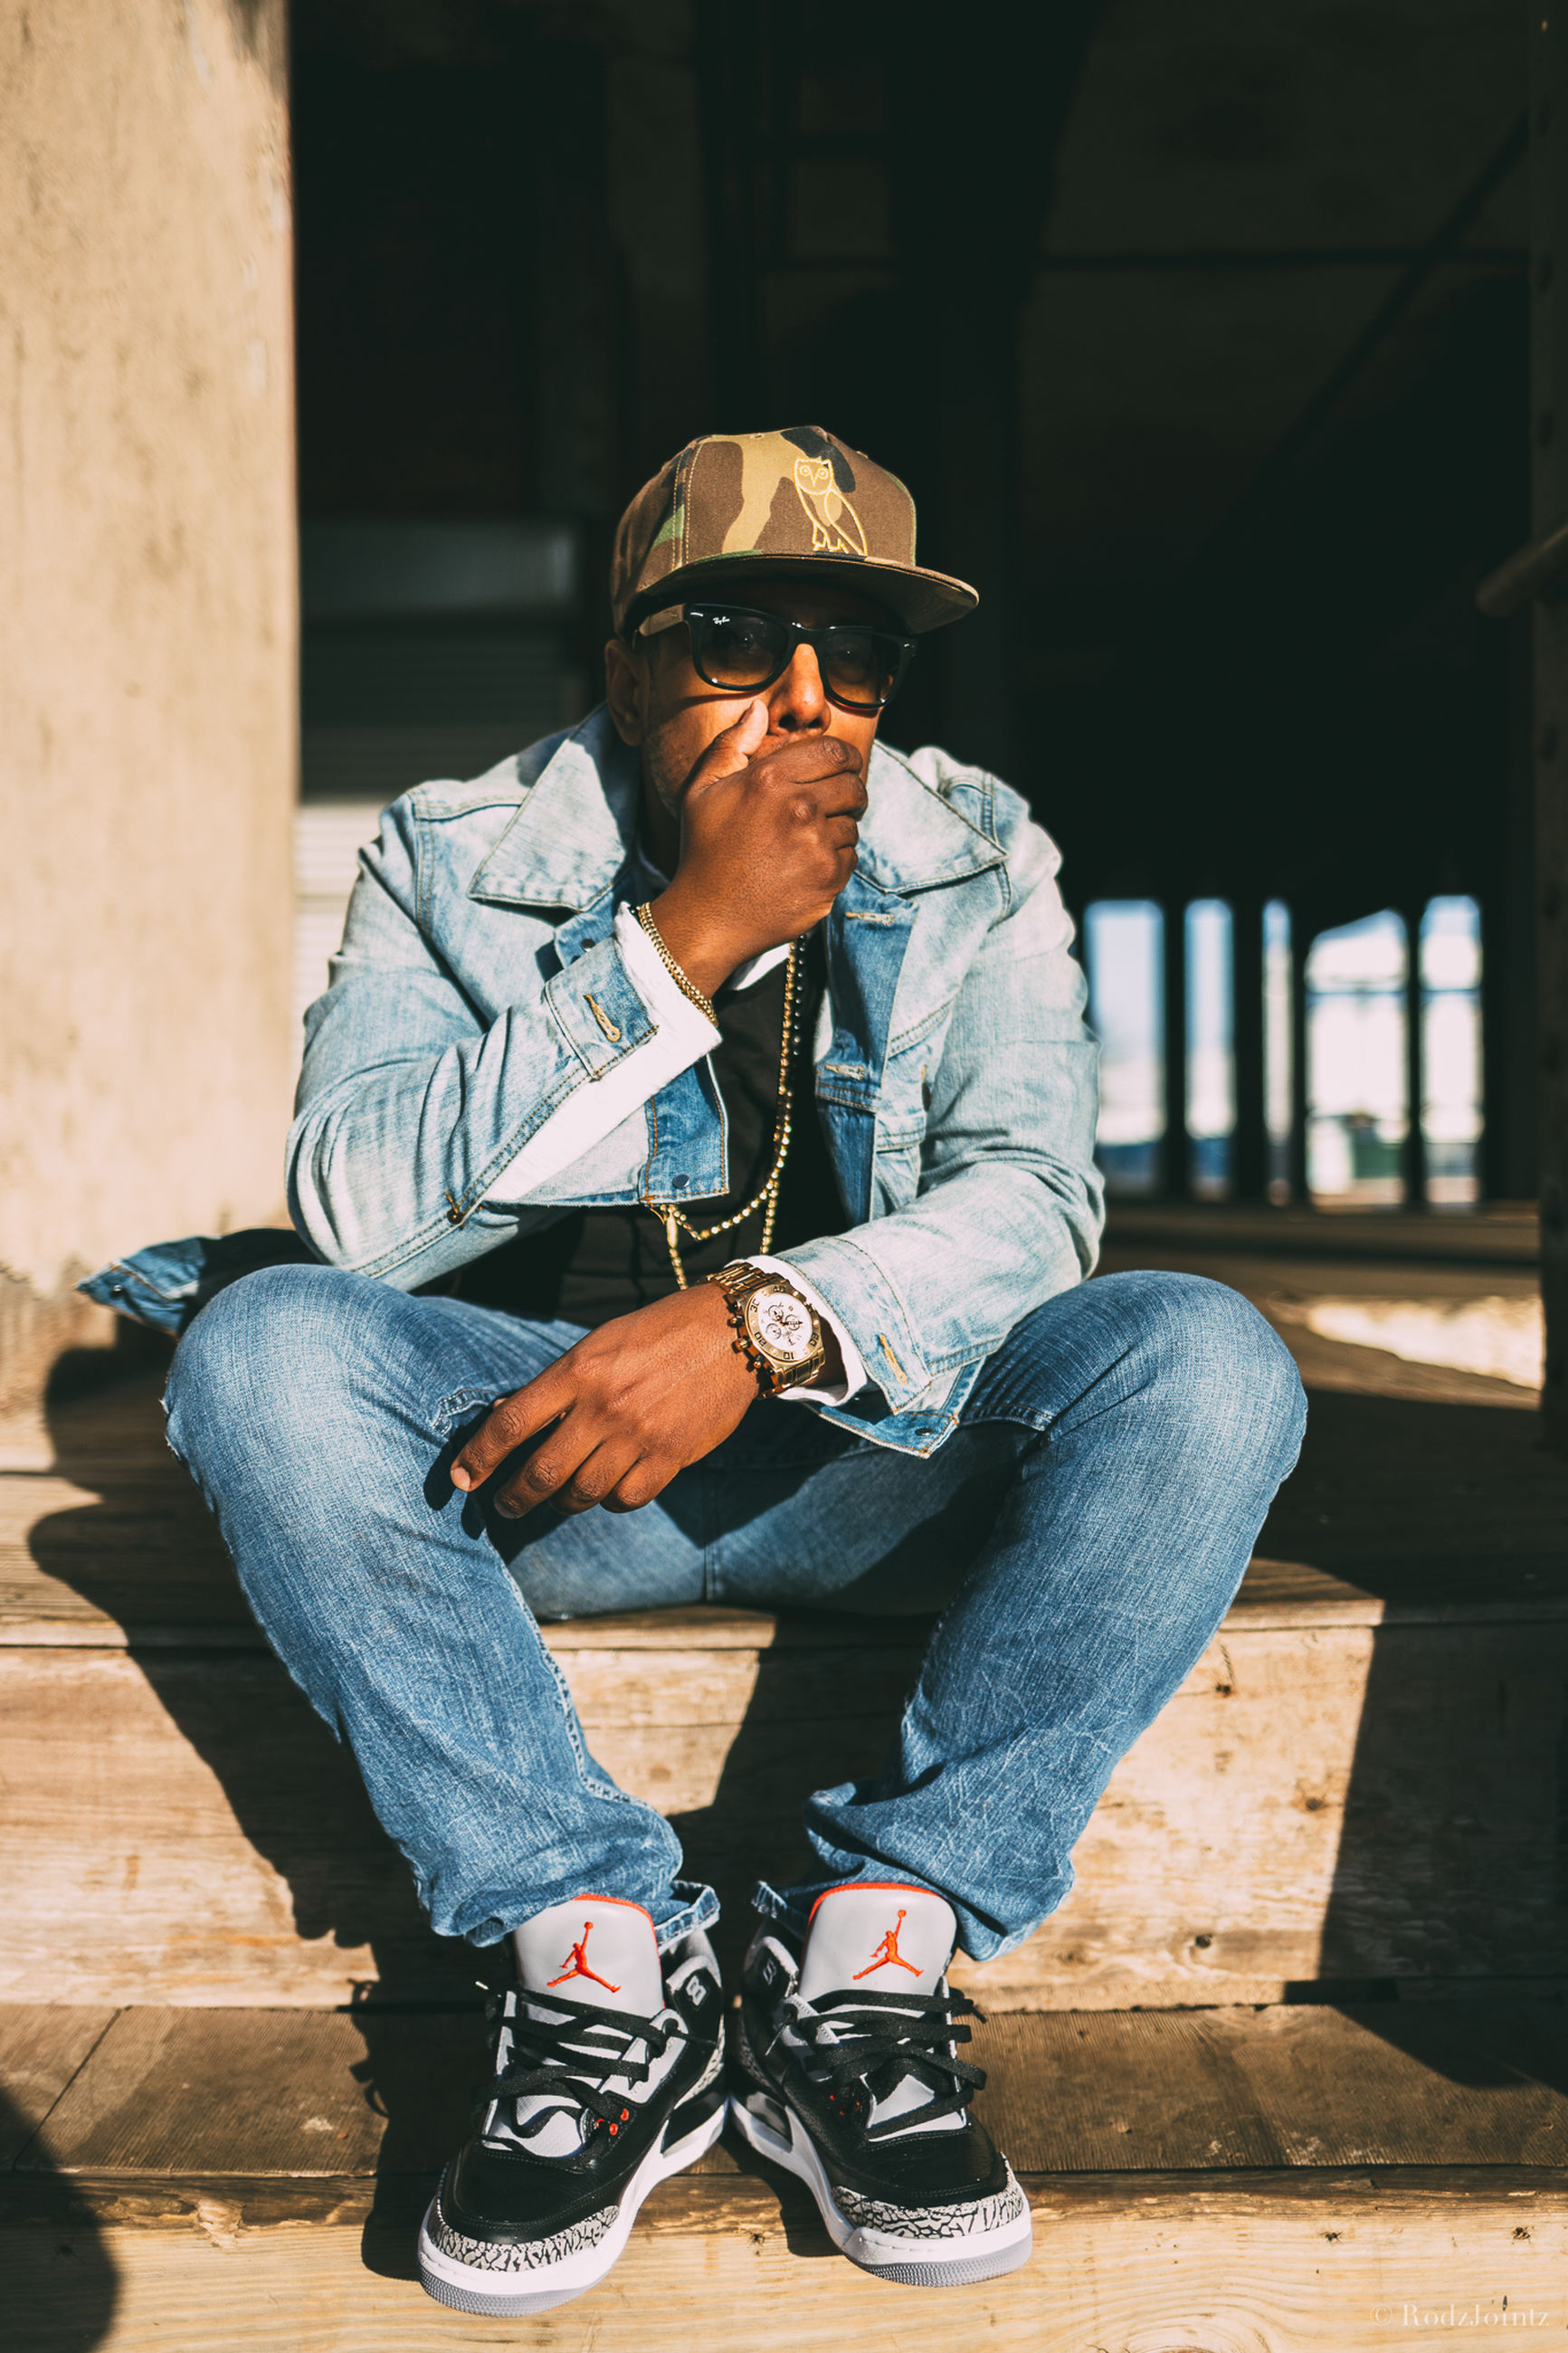 casual clothing, lifestyles, person, young men, leisure activity, young adult, full length, sitting, front view, mid adult men, portrait, mid adult, looking at camera, three quarter length, cap, sunglasses, standing, jacket